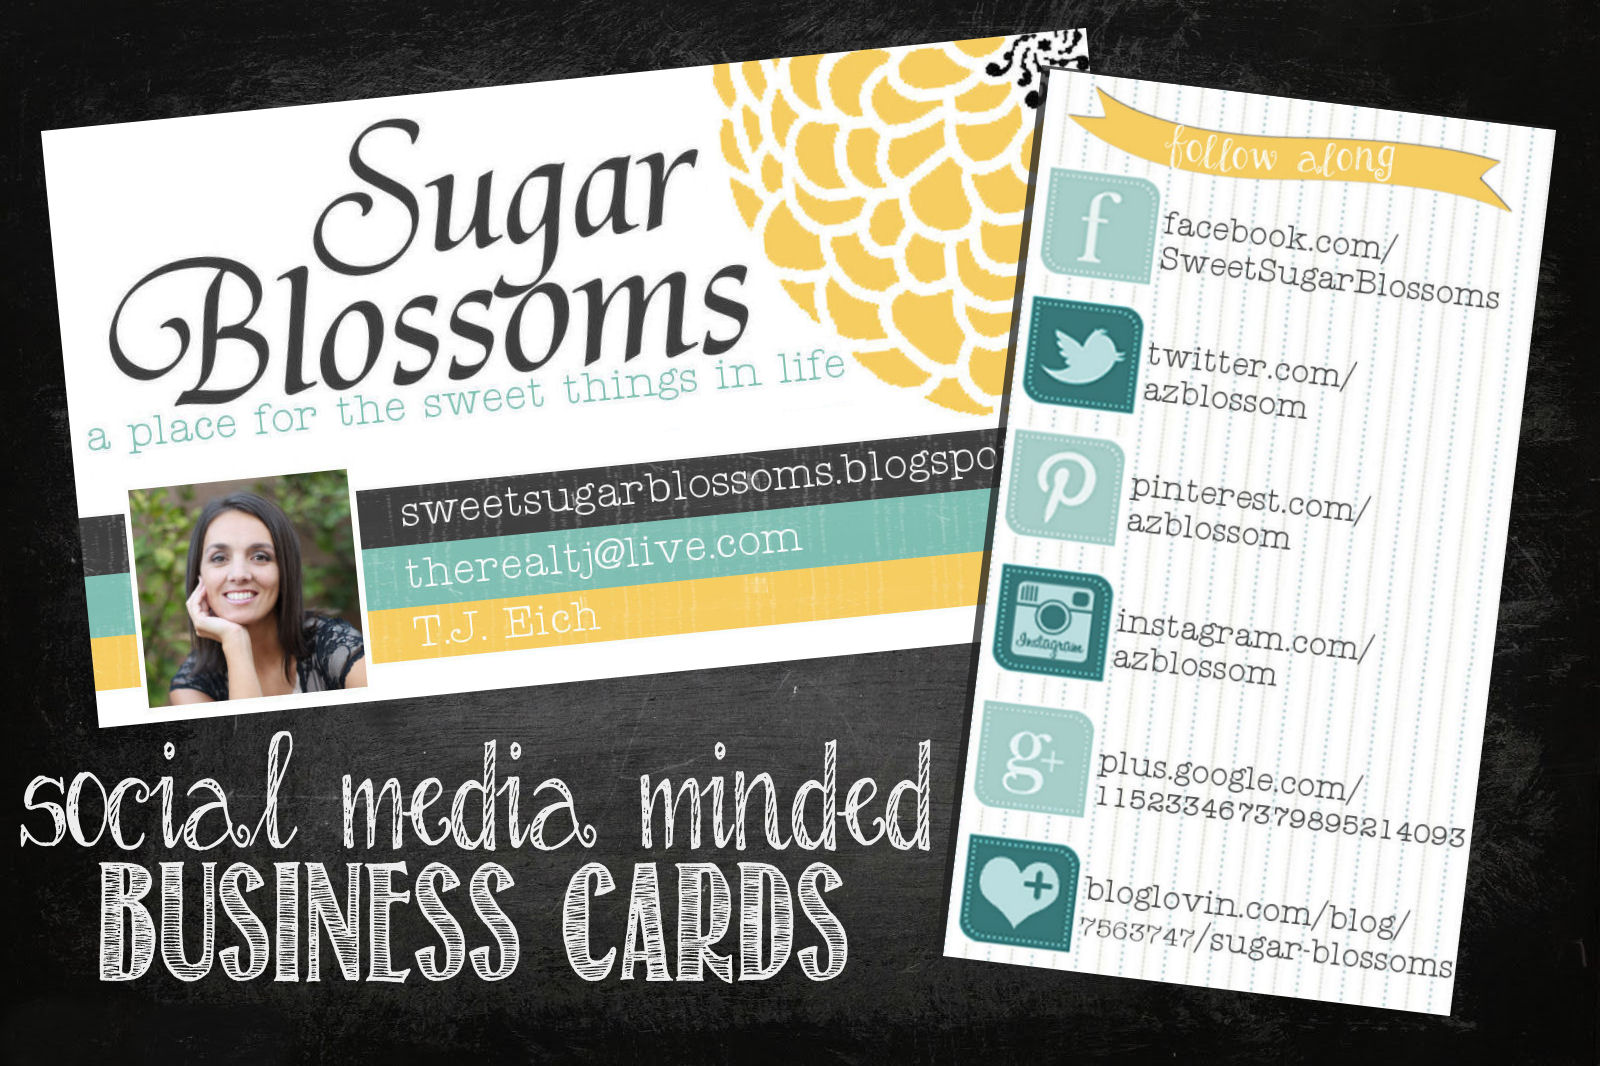 Sweet Sugar Blossoms: Social Media Business Cards